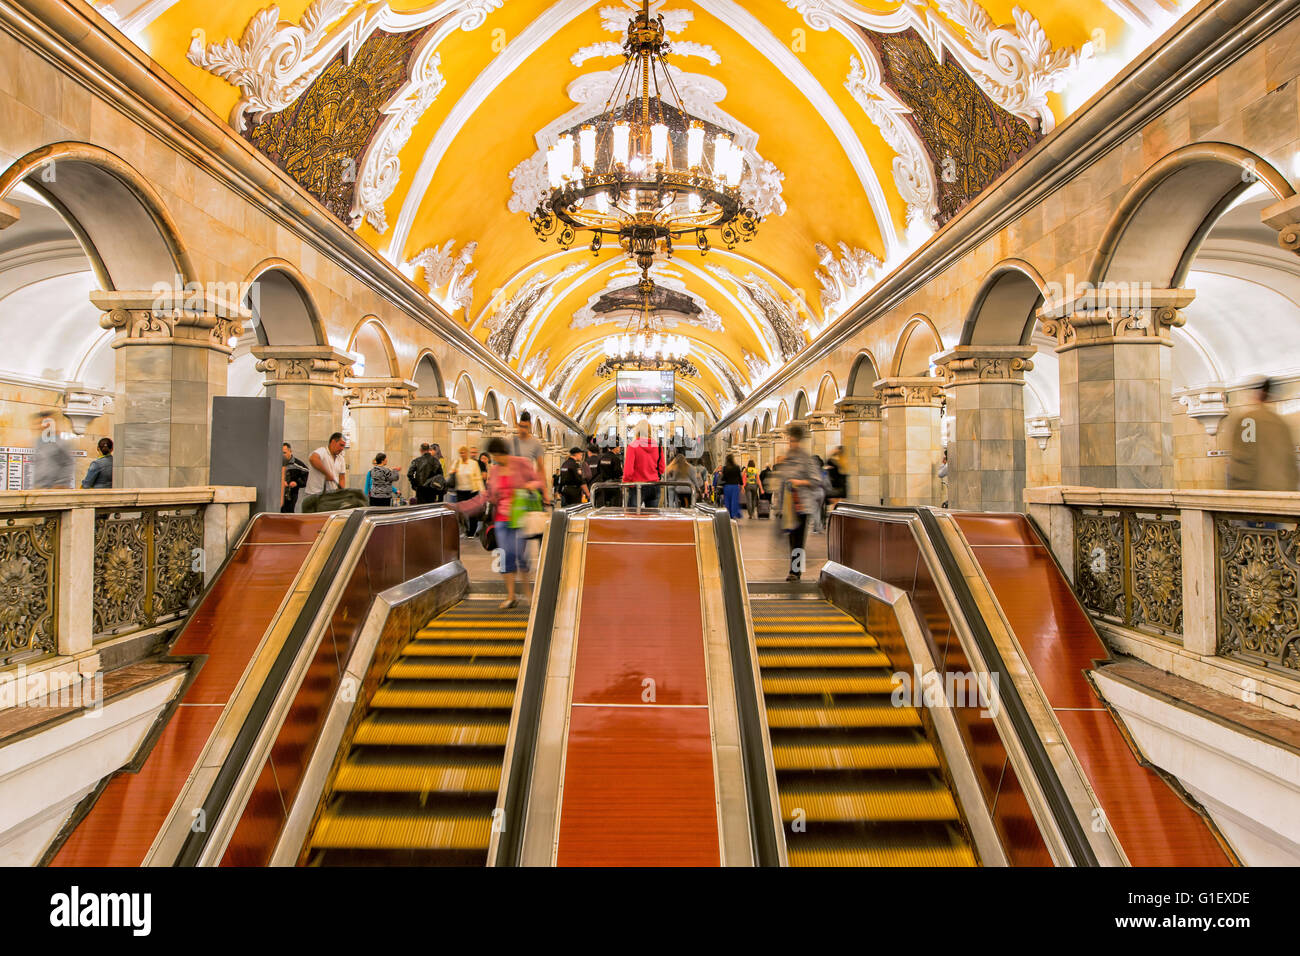 Komsomolskaya subway station in Moscow - Stock Image